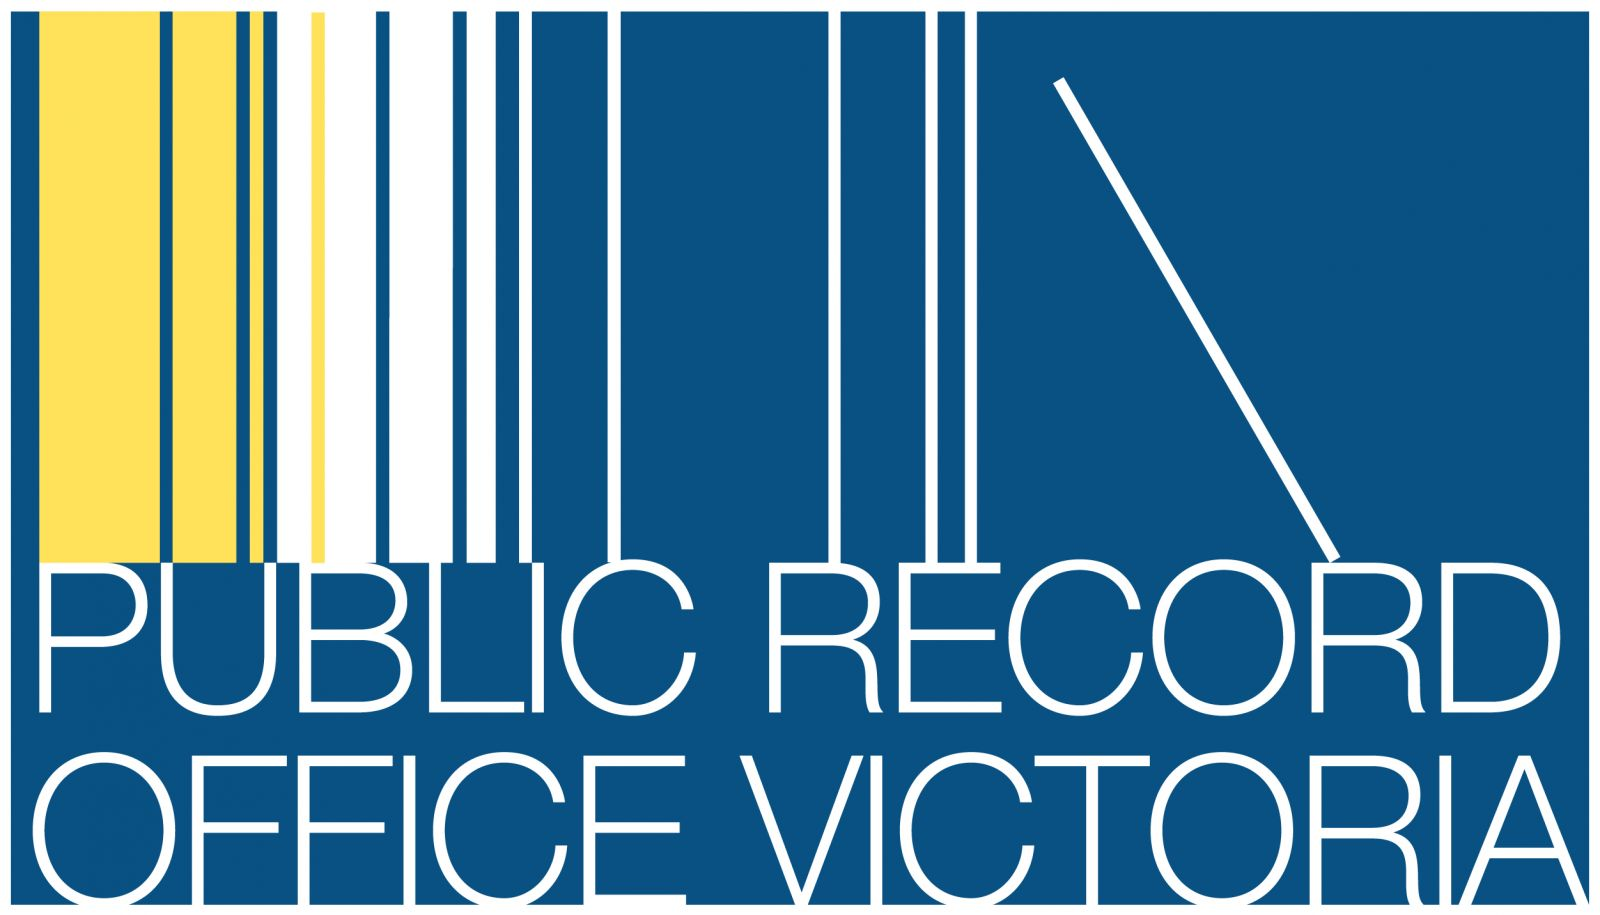 Public Record Office Victoria logo